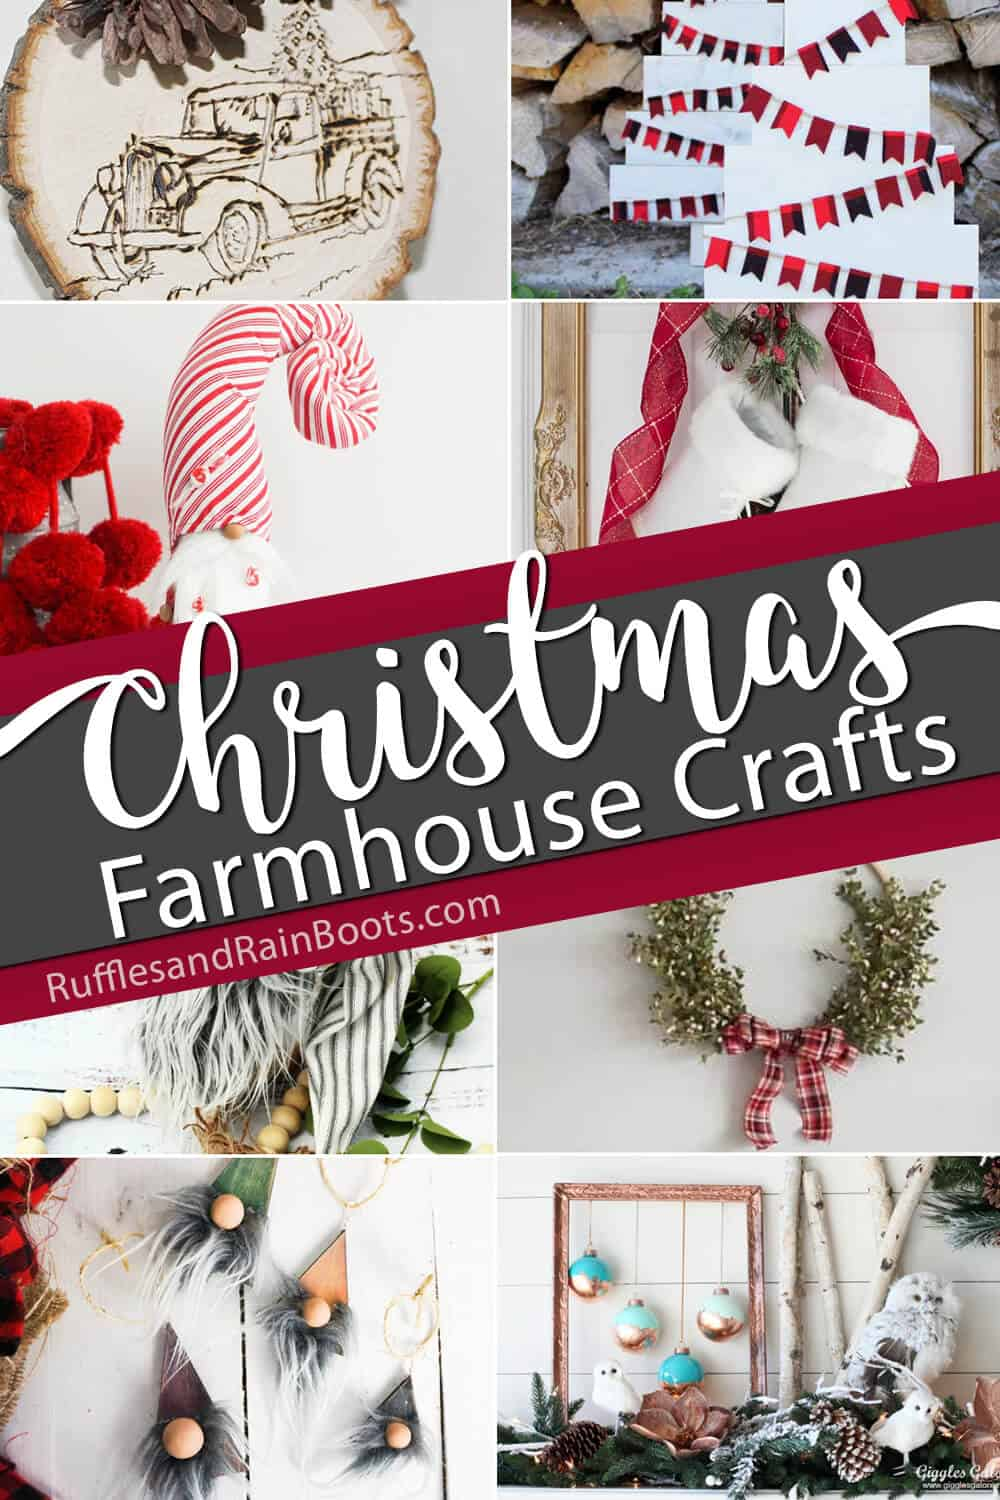 photo collage of holiday farmhouse decor DIY ideas with text which reads christmas farmhouse crafts